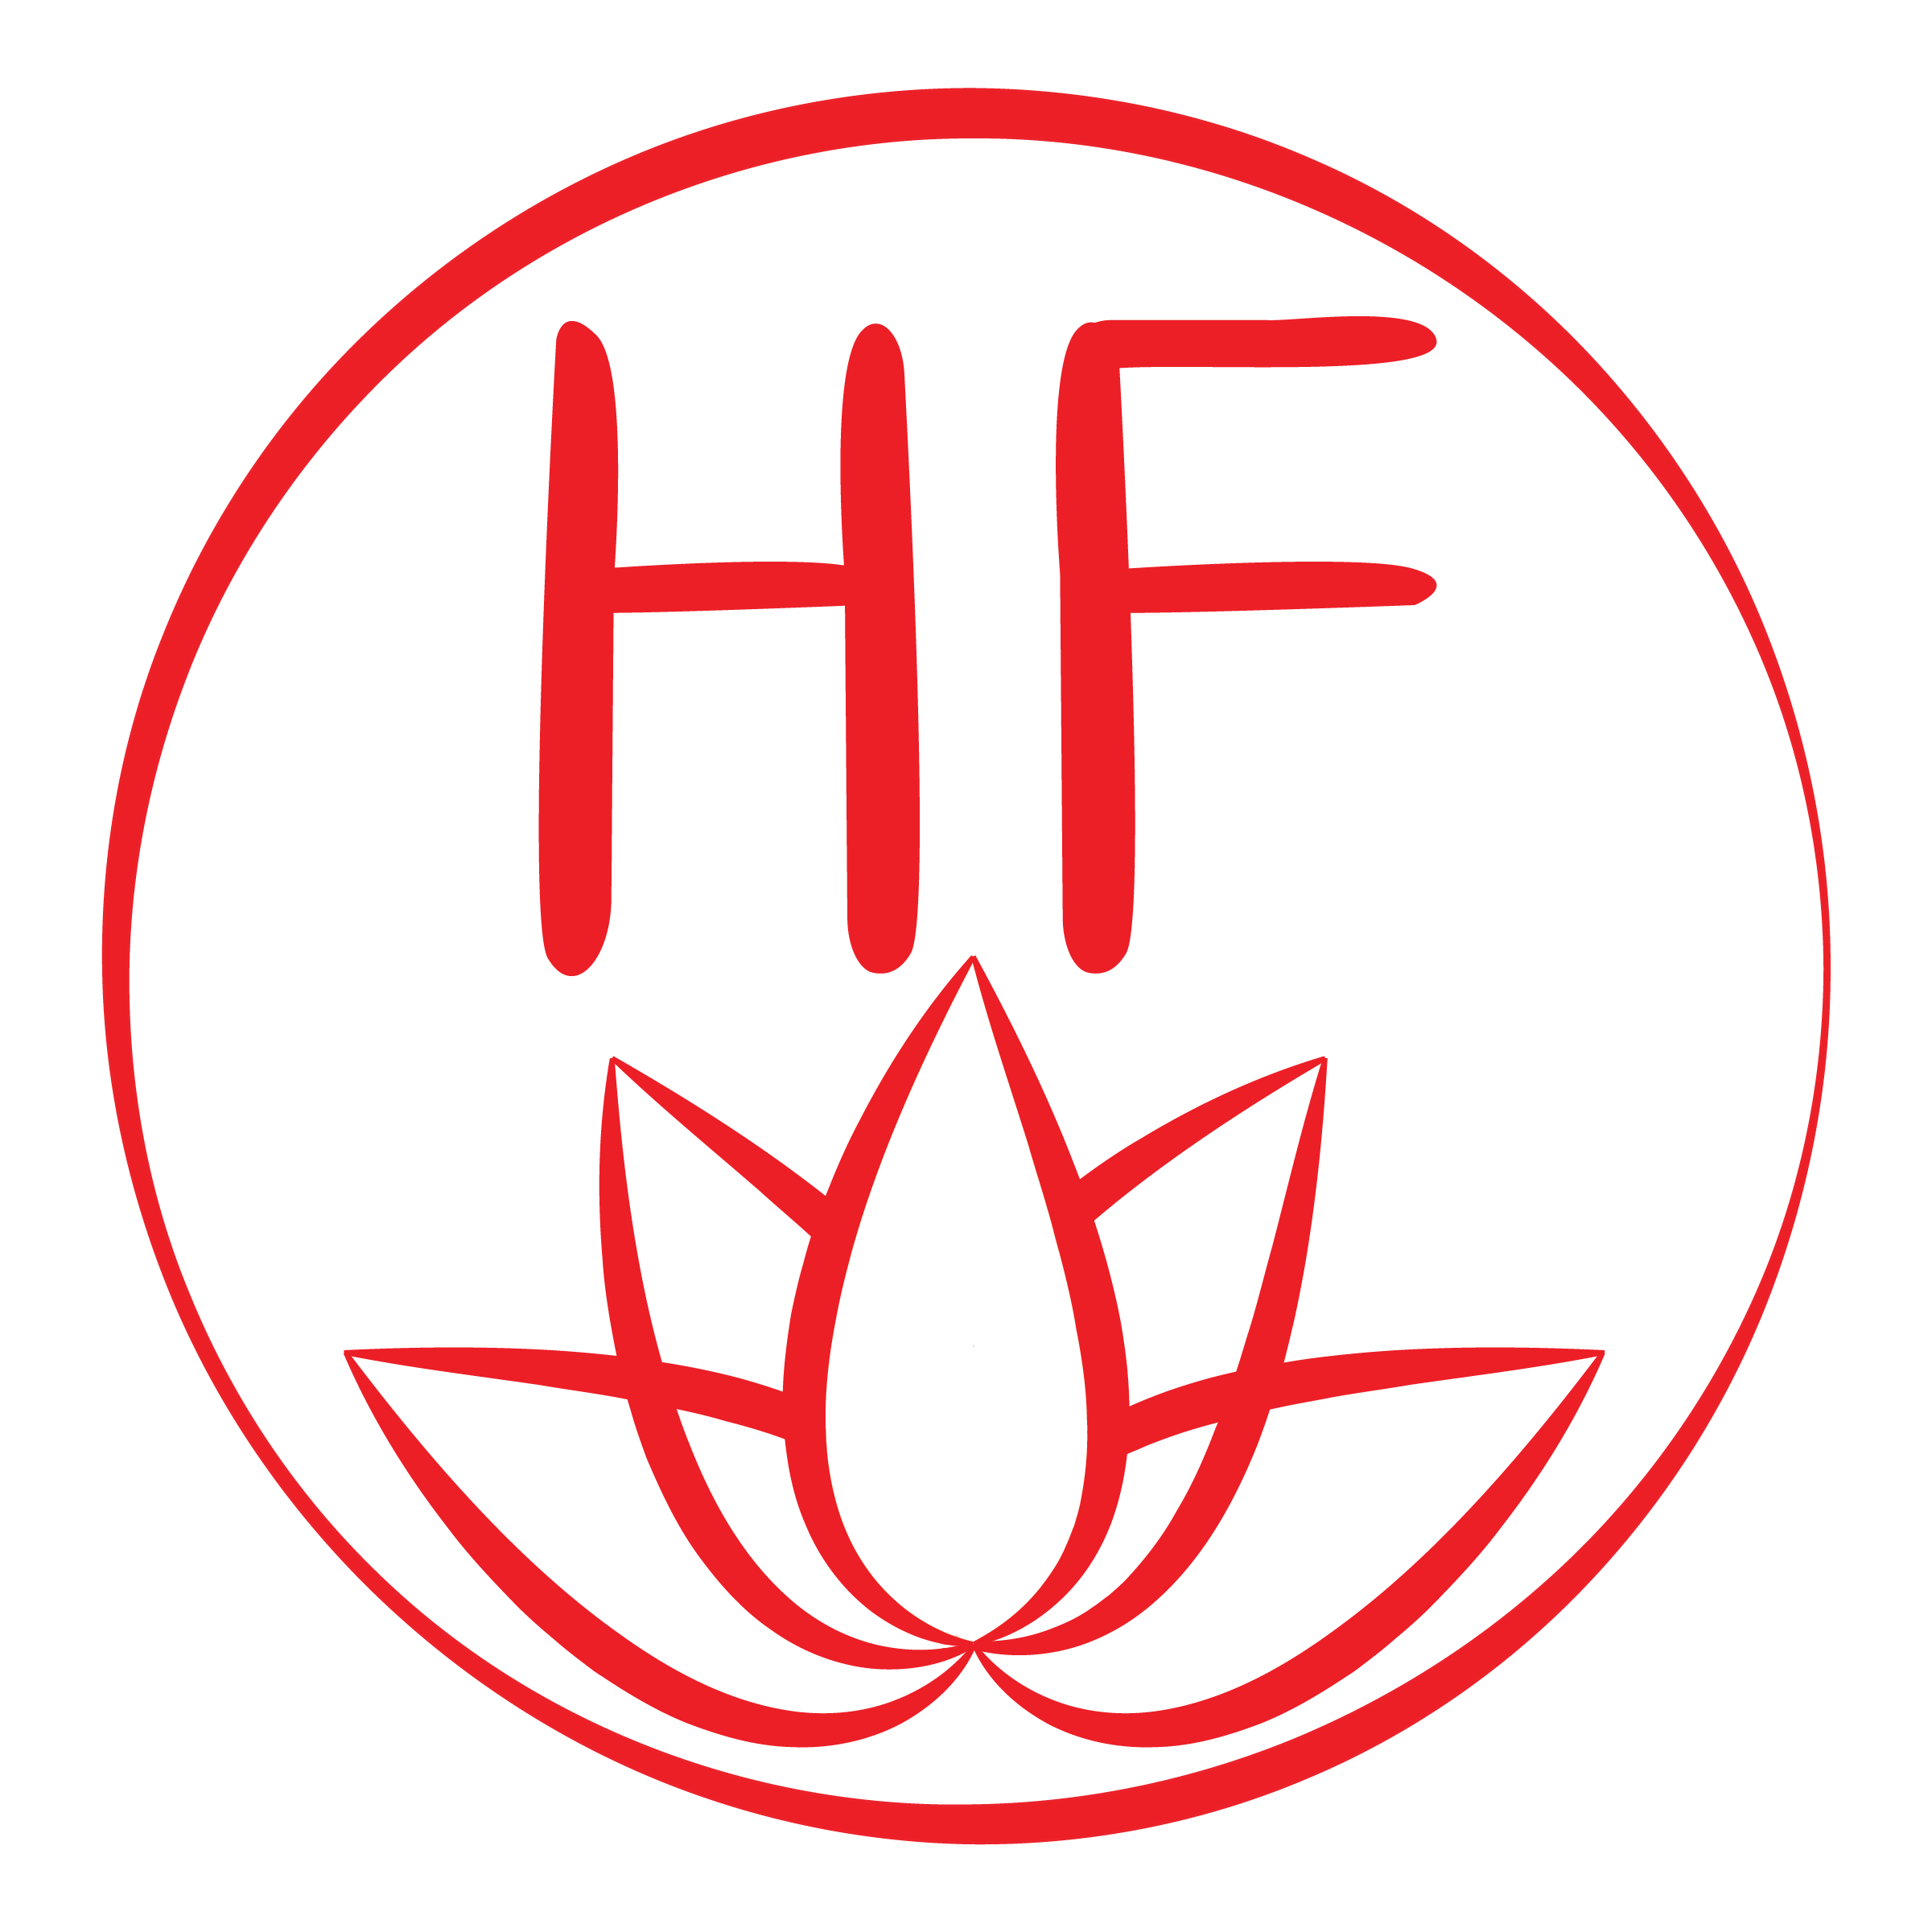 A logo I made for myself as a personal project